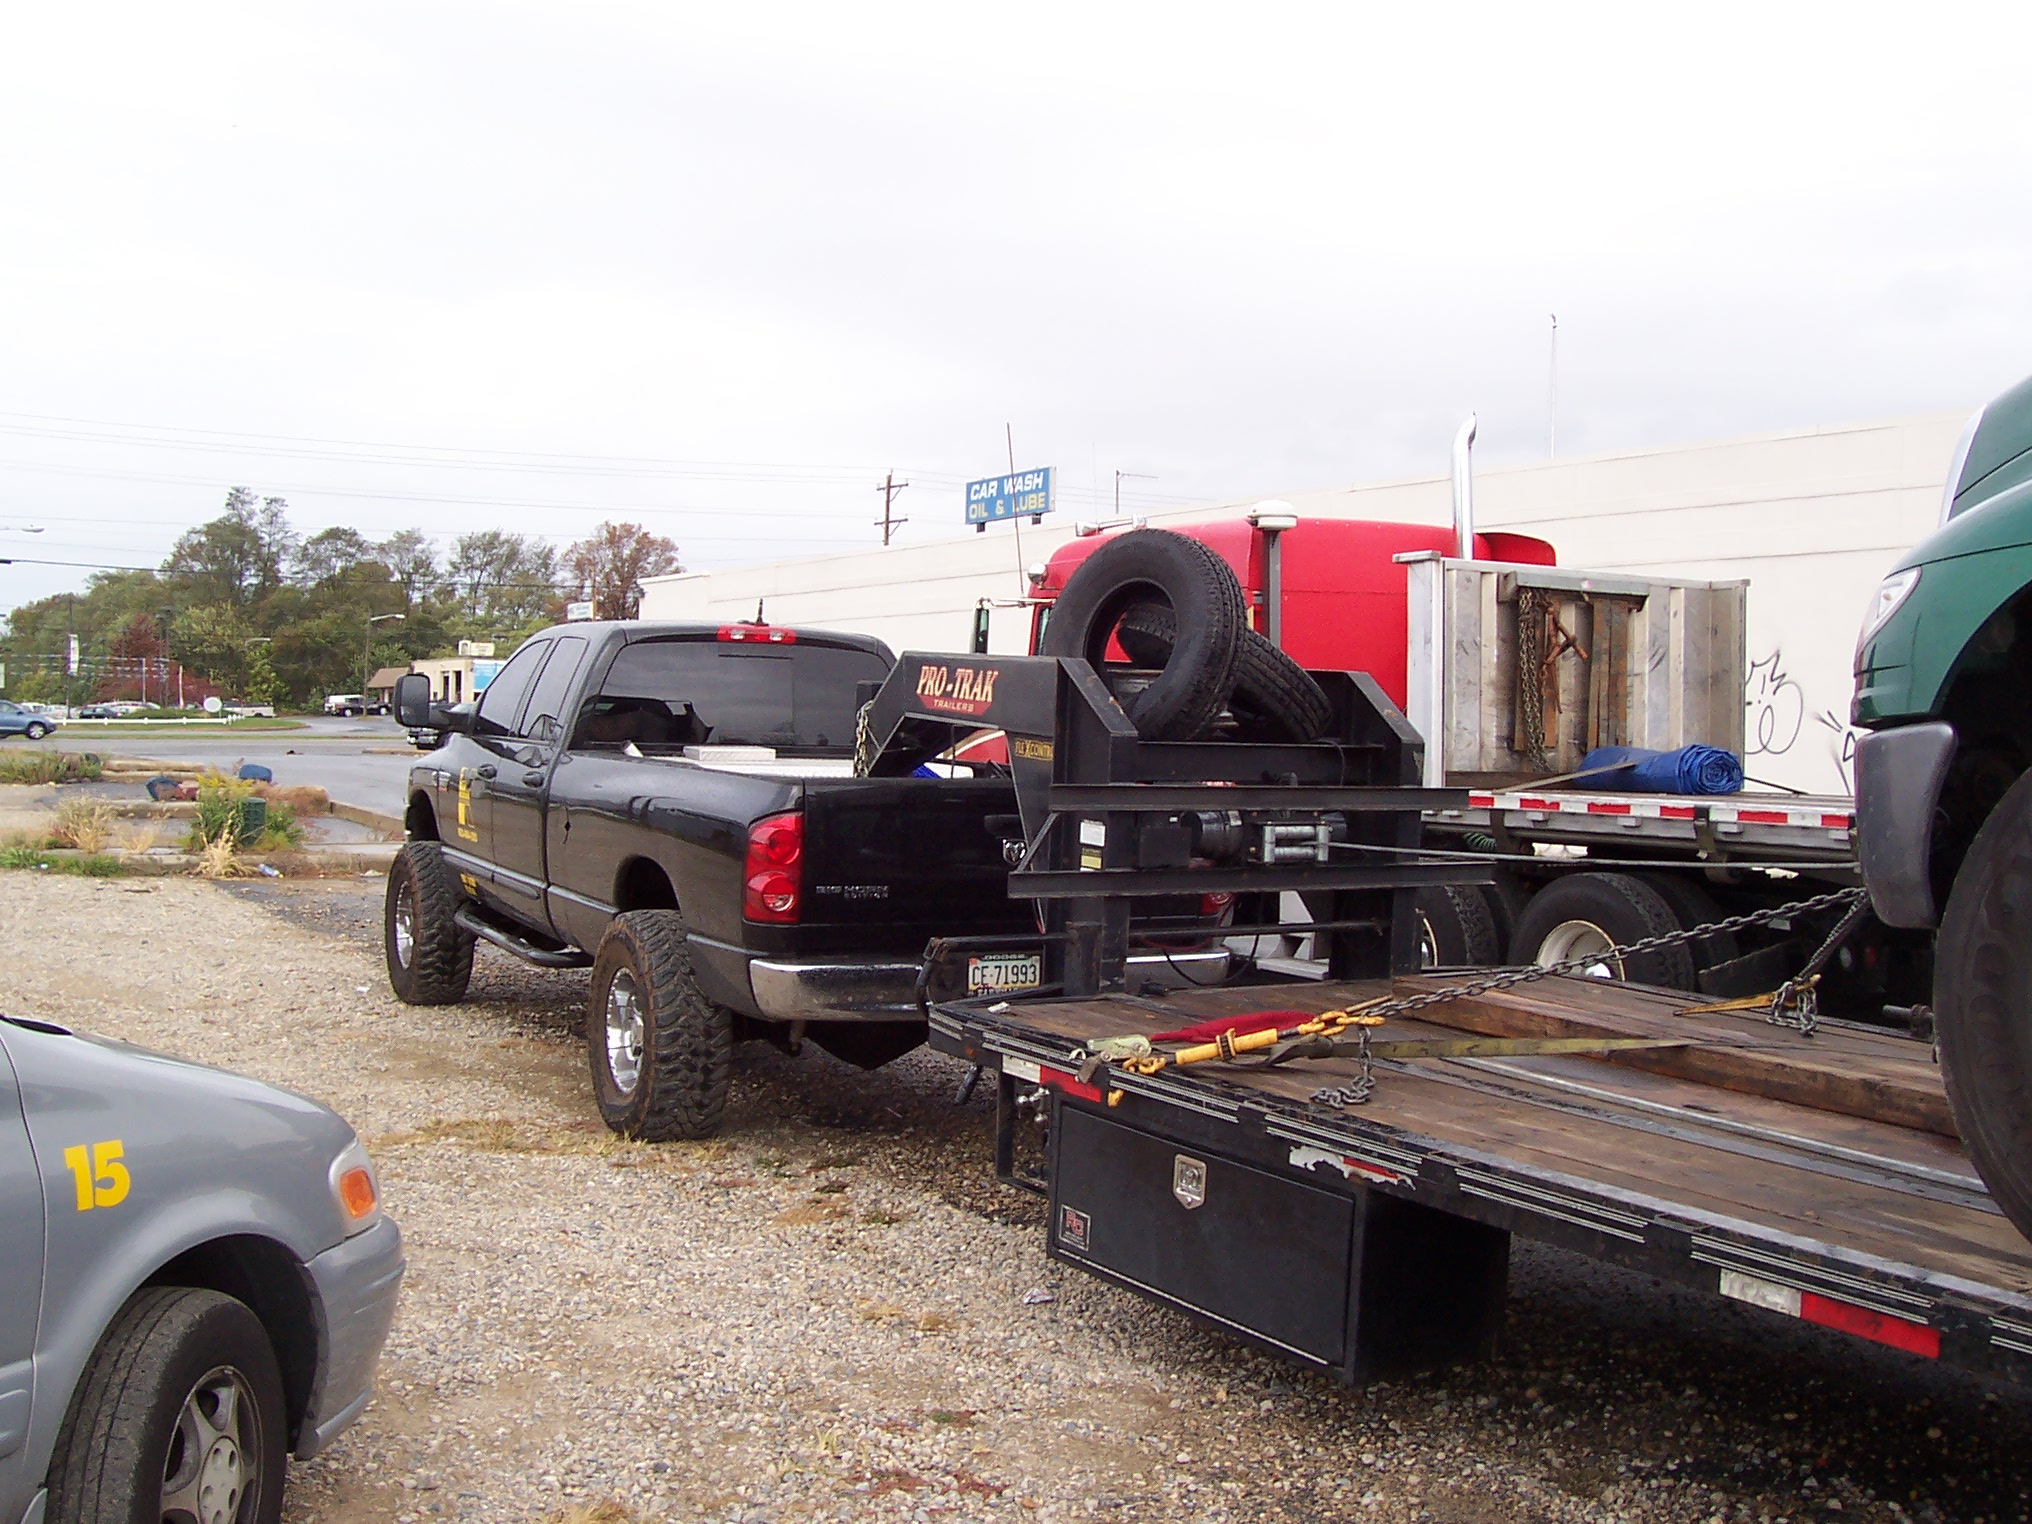 D Body Lift Leveling Kit S on Dodge 2500 With Flat Bed